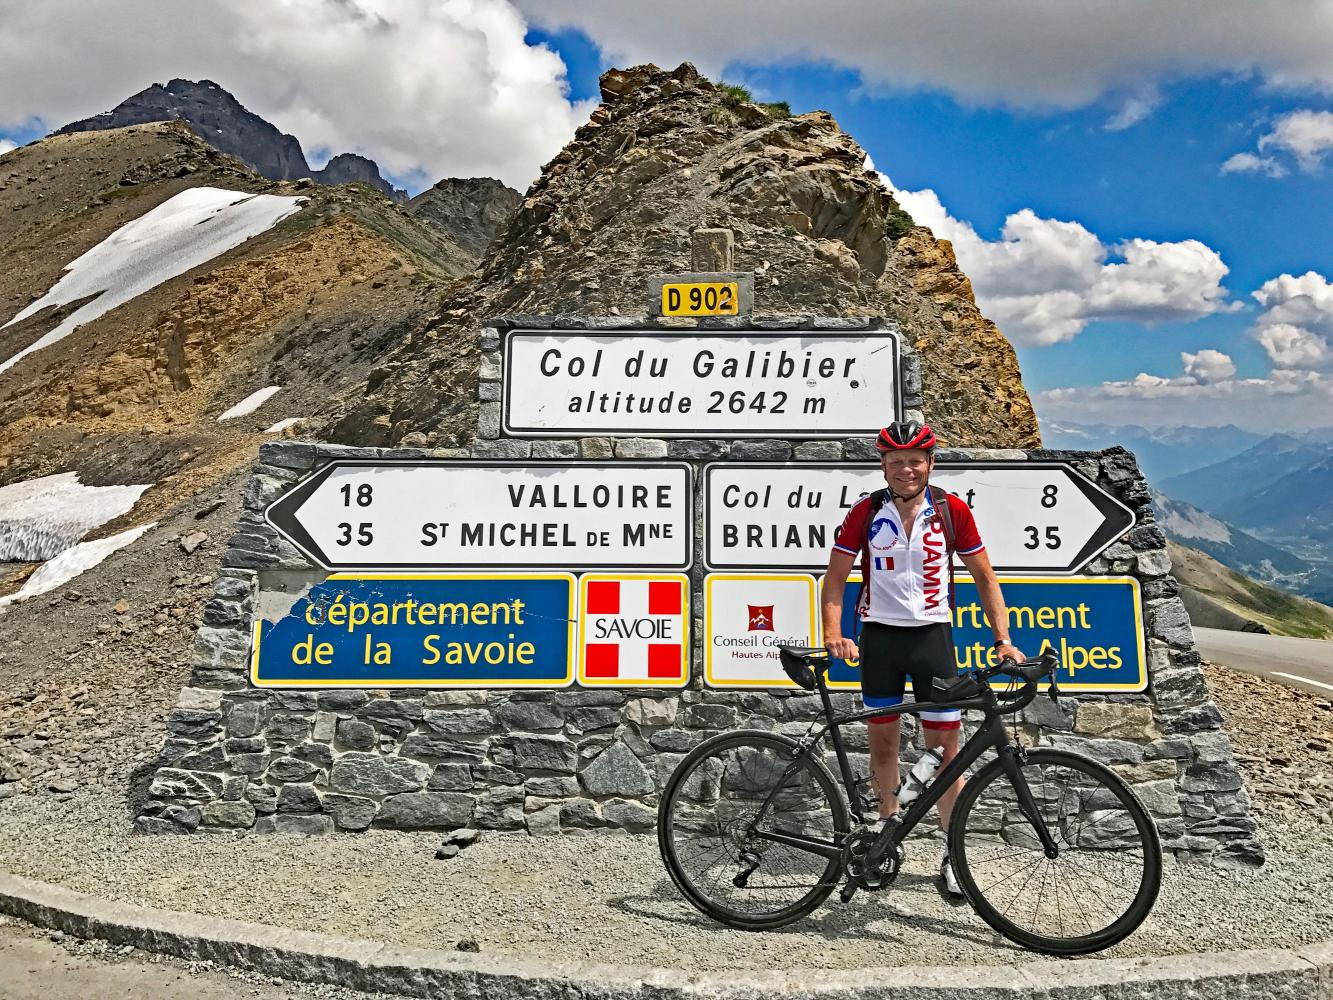 Col du Galibier (Valloire) Bike Climb - PJAMM Cycling